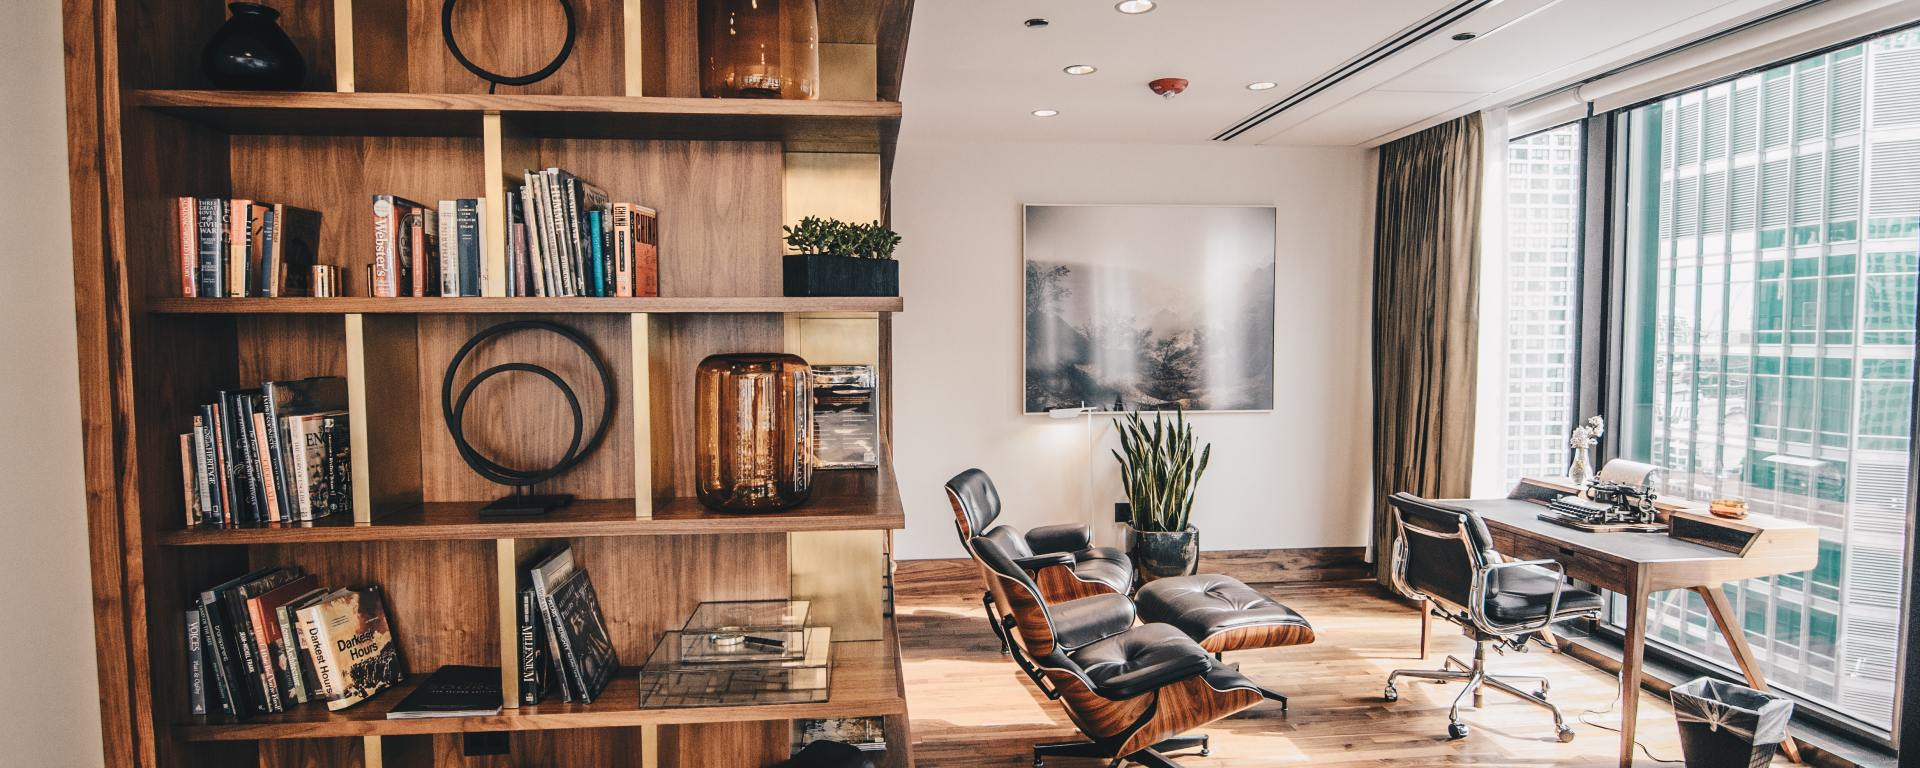 An image of an interior with living space, desk, and shelving, in medium wooden furnishings.